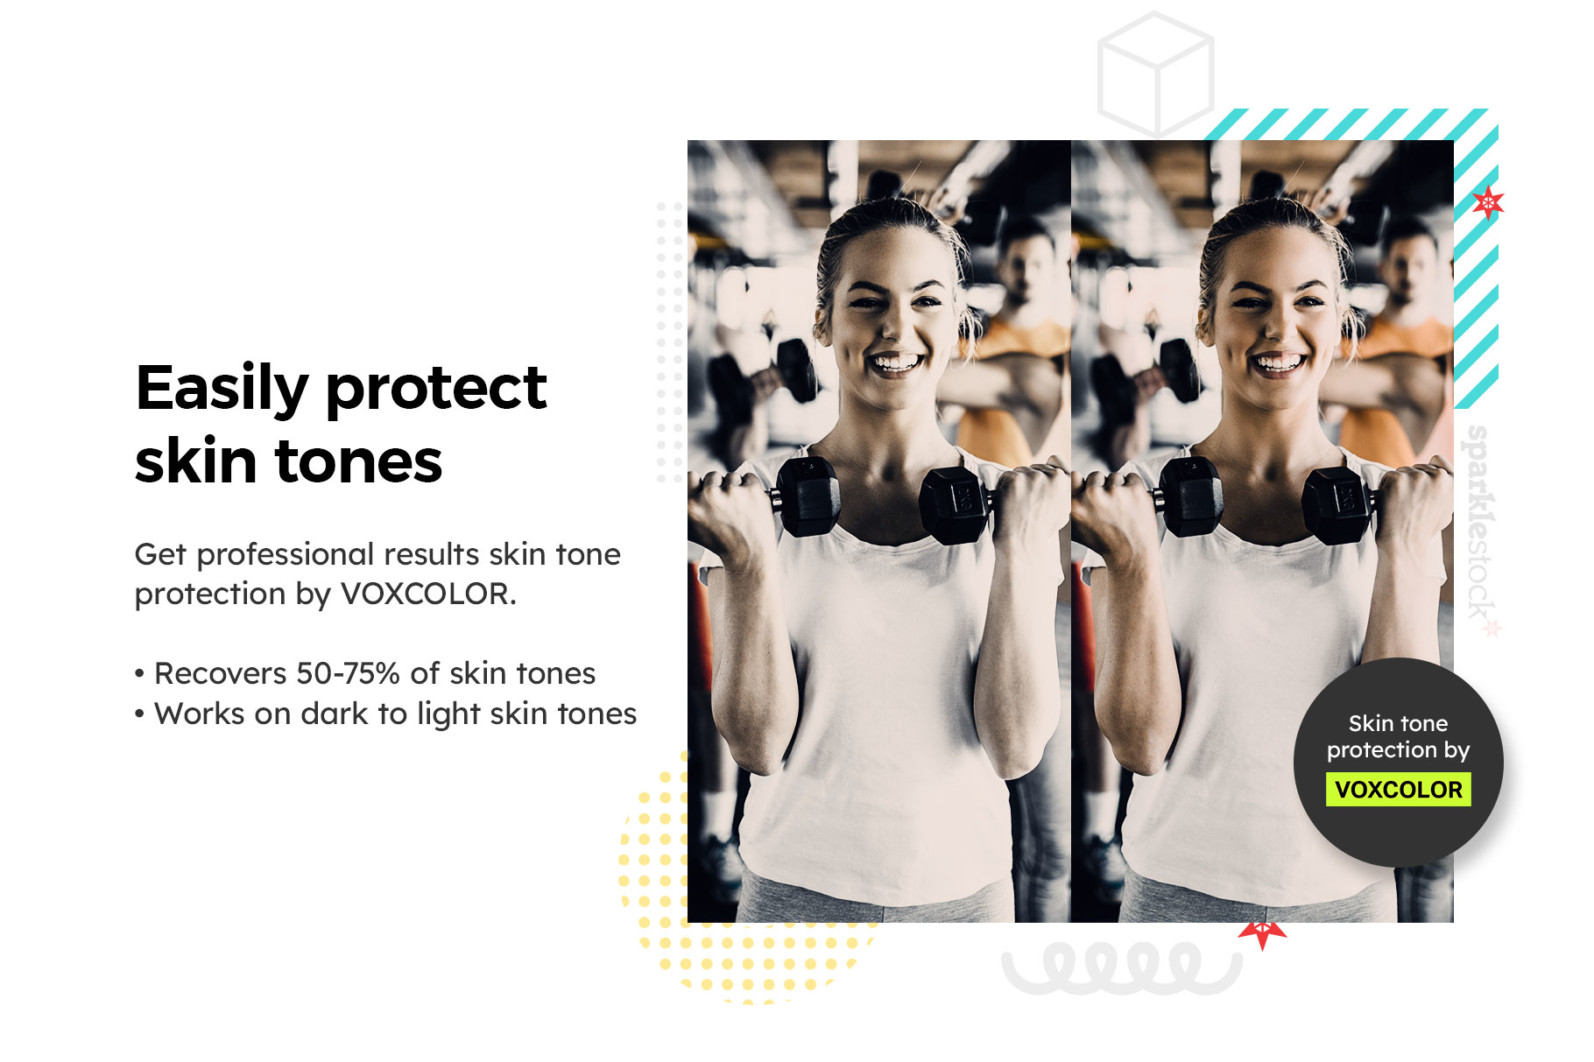 20 Workout Lightroom Presets and LUTs - 09 44 -